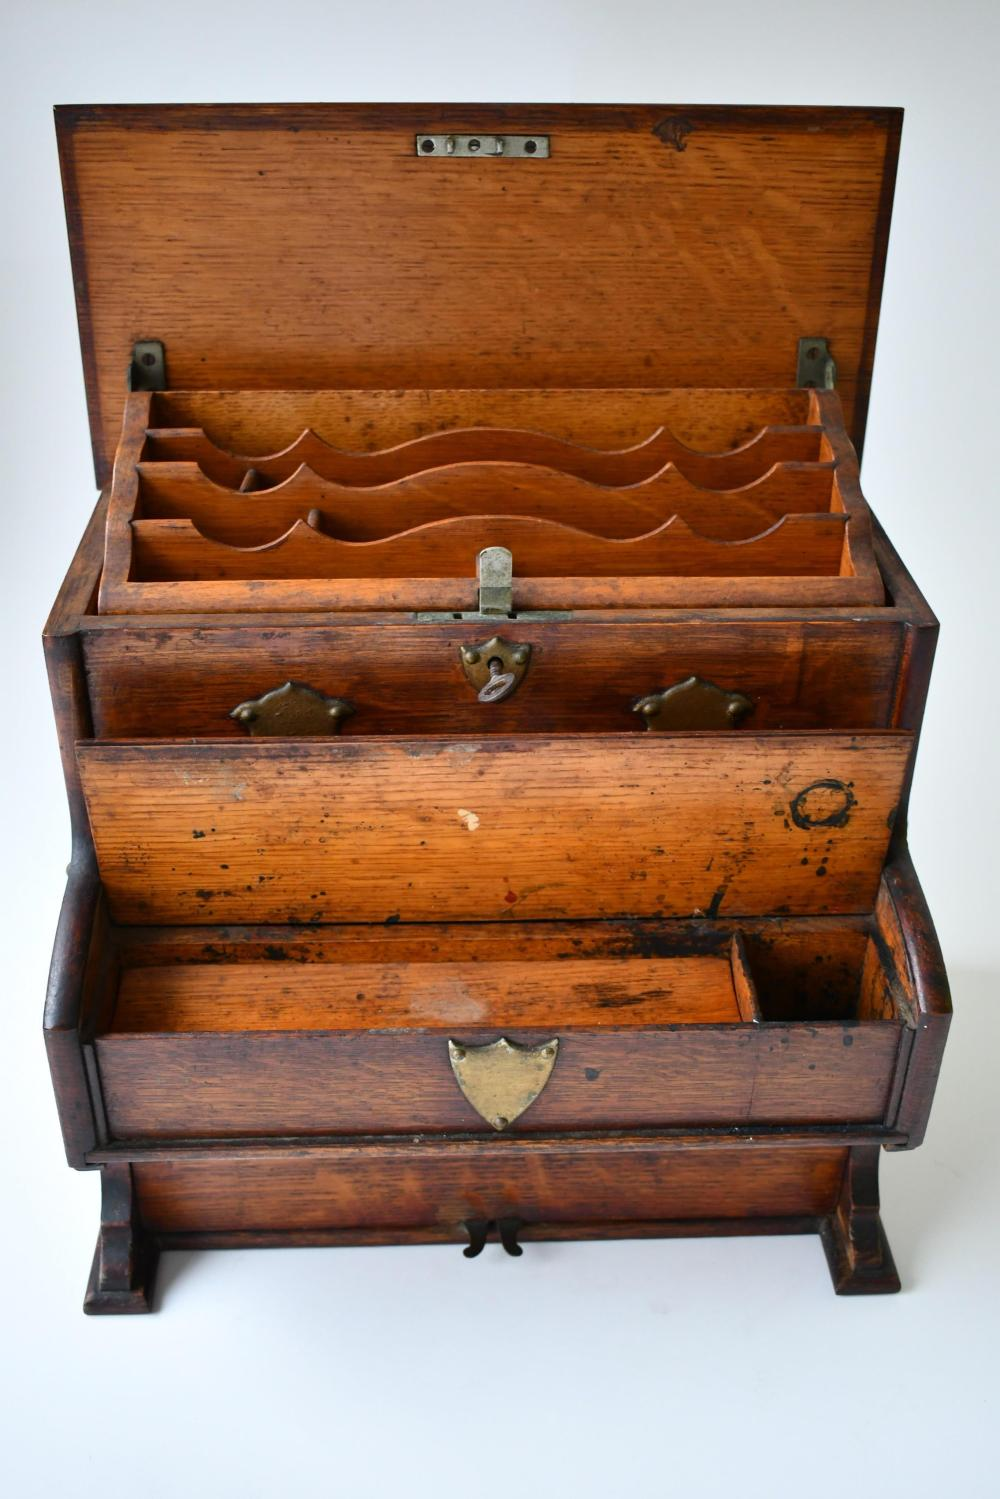 Oak Stationary chest in the form of a piano / organ 27.50 x 13 x 31.50 cm. (10.83 x 5.12 x 12.40 in.)